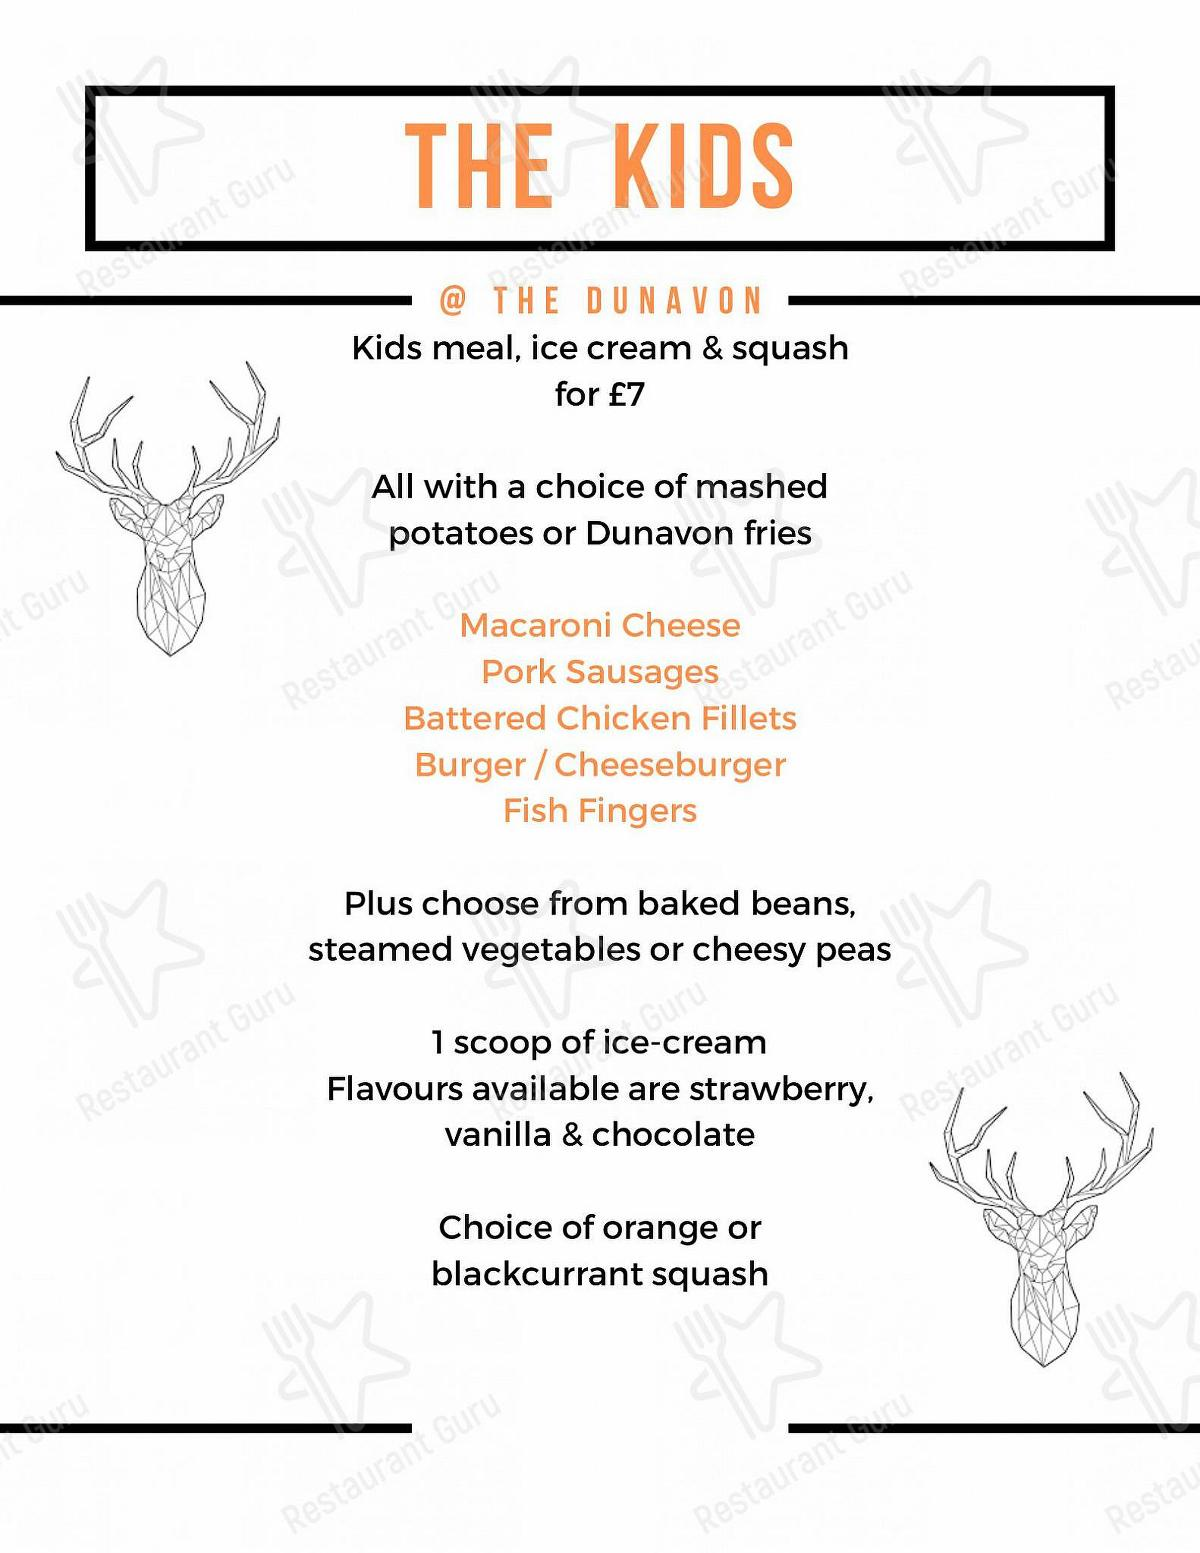 Dunavon House Hotel menu - dishes and beverages